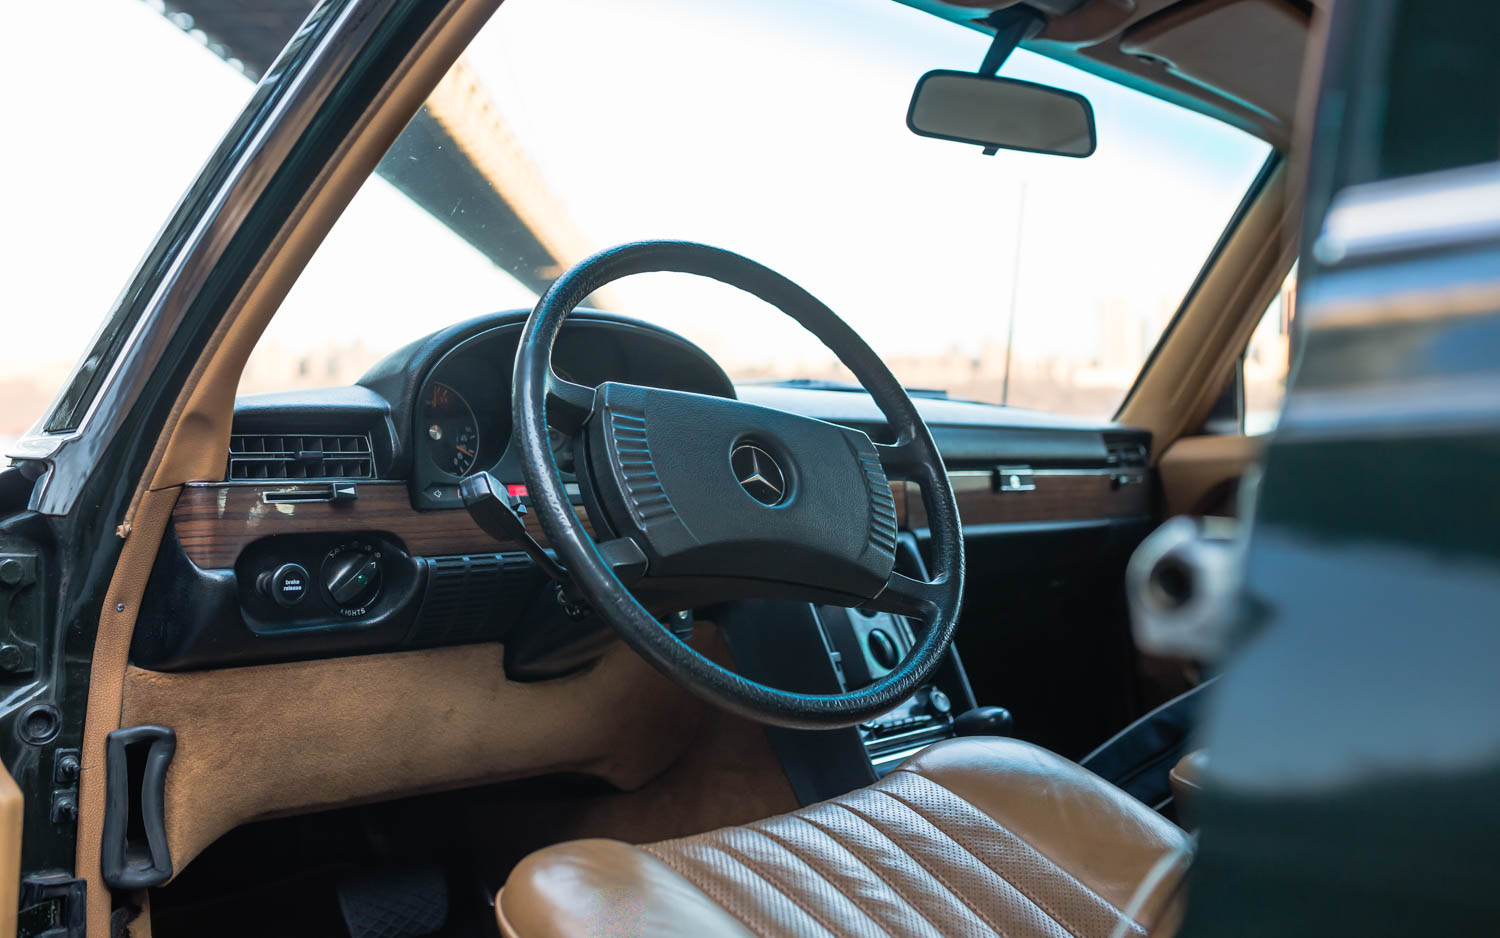 1974 Mercedes-Benz 450SEL steering wheel